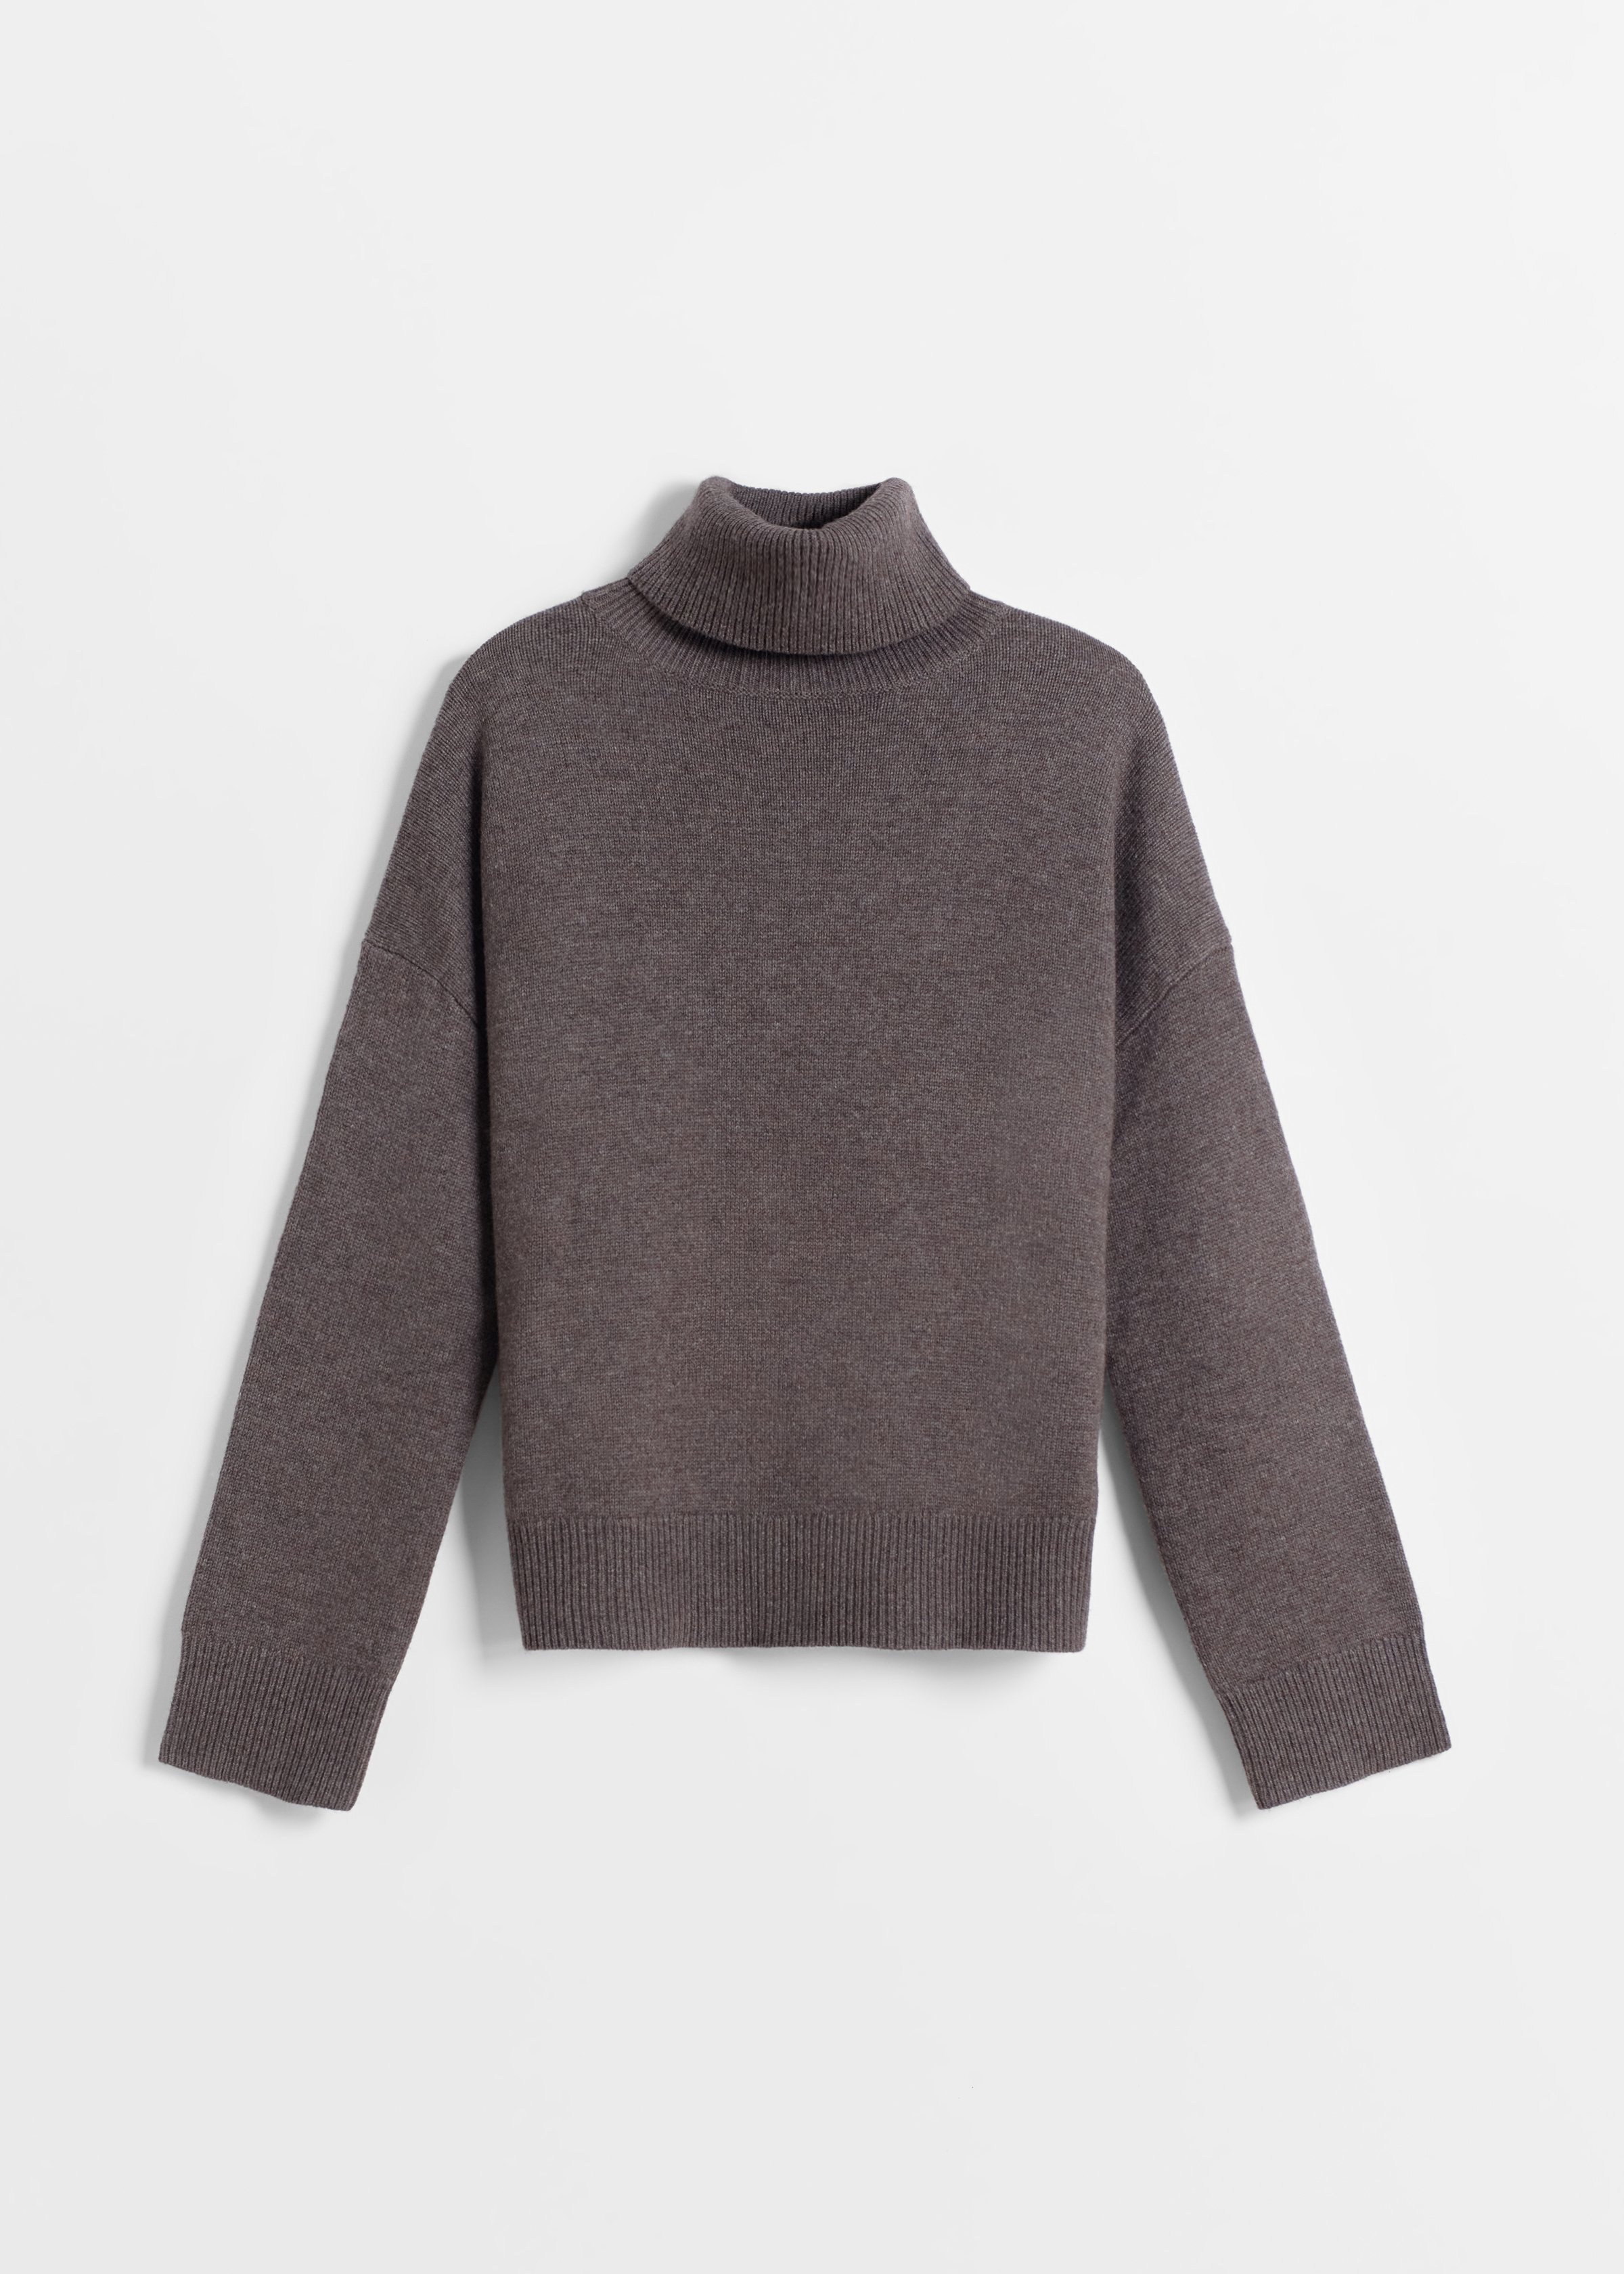 Boxy Turtleneck Sweater - Brown - CO